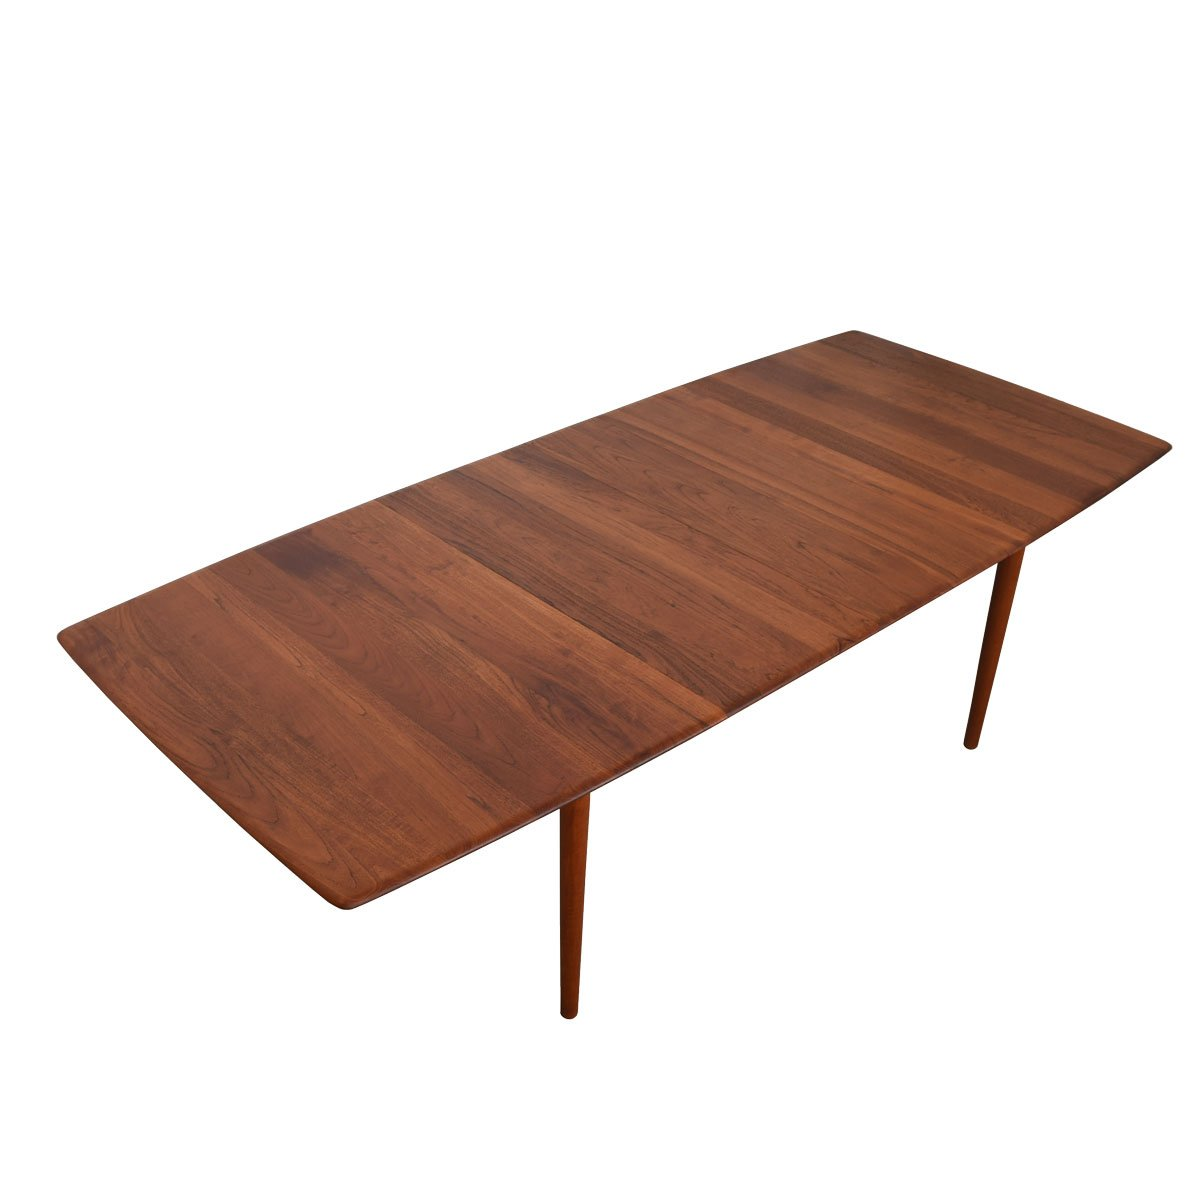 Peter Hvidt Smooth-Edge Solid Teak Expanding Dining Table